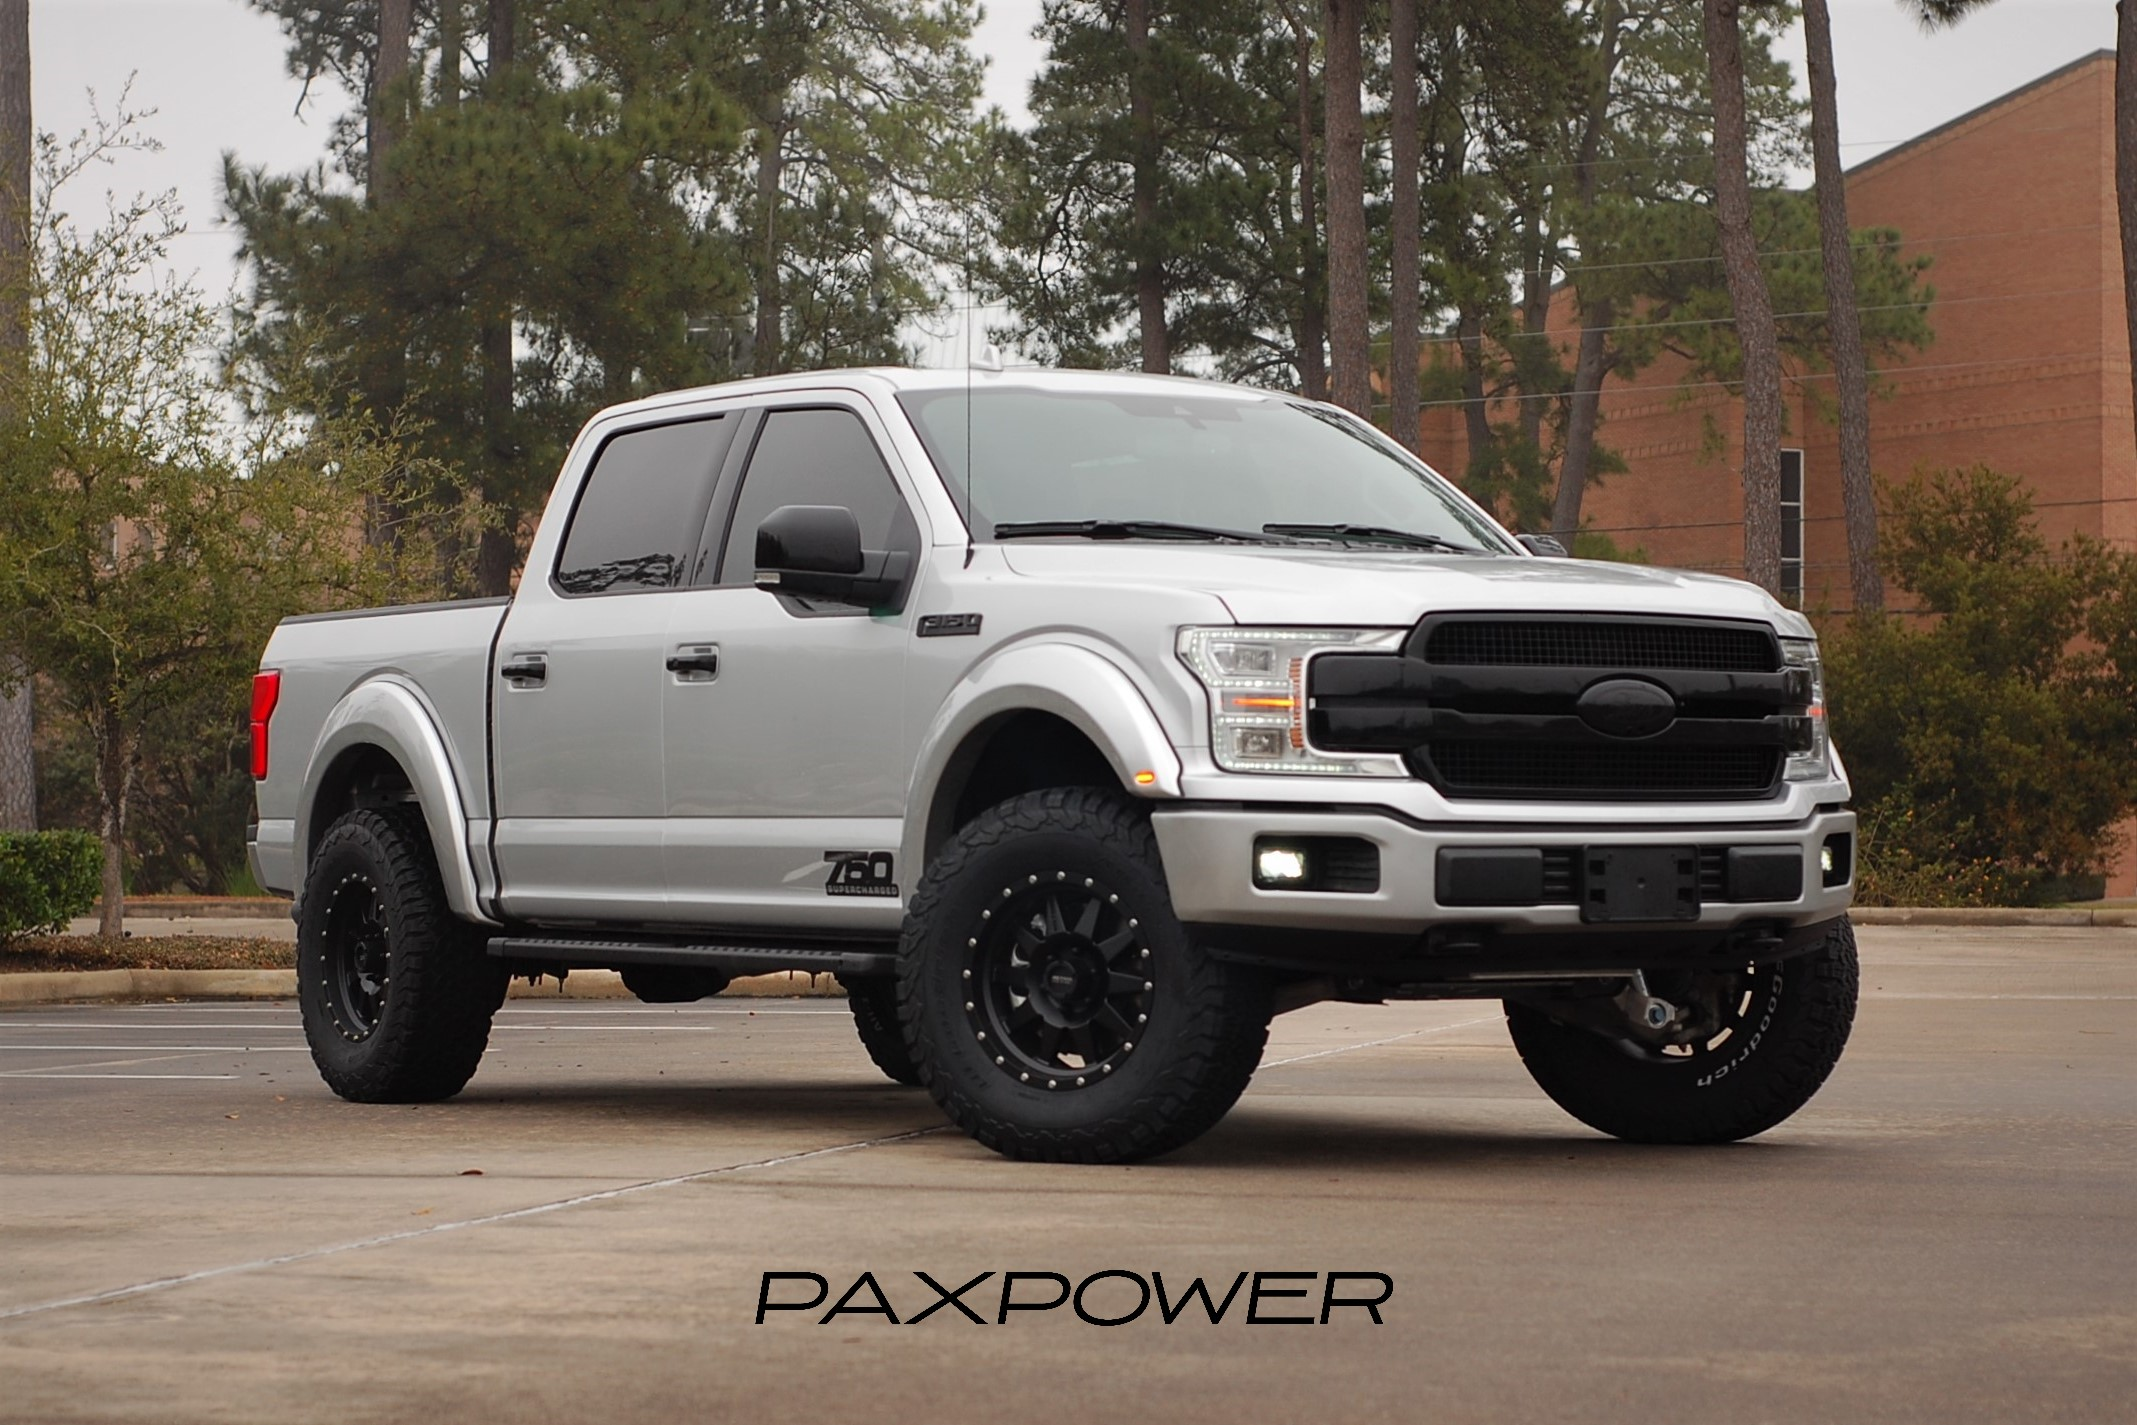 V8 Raptor by PaxPower - 2019-2020 V8 and Diesel Raptor